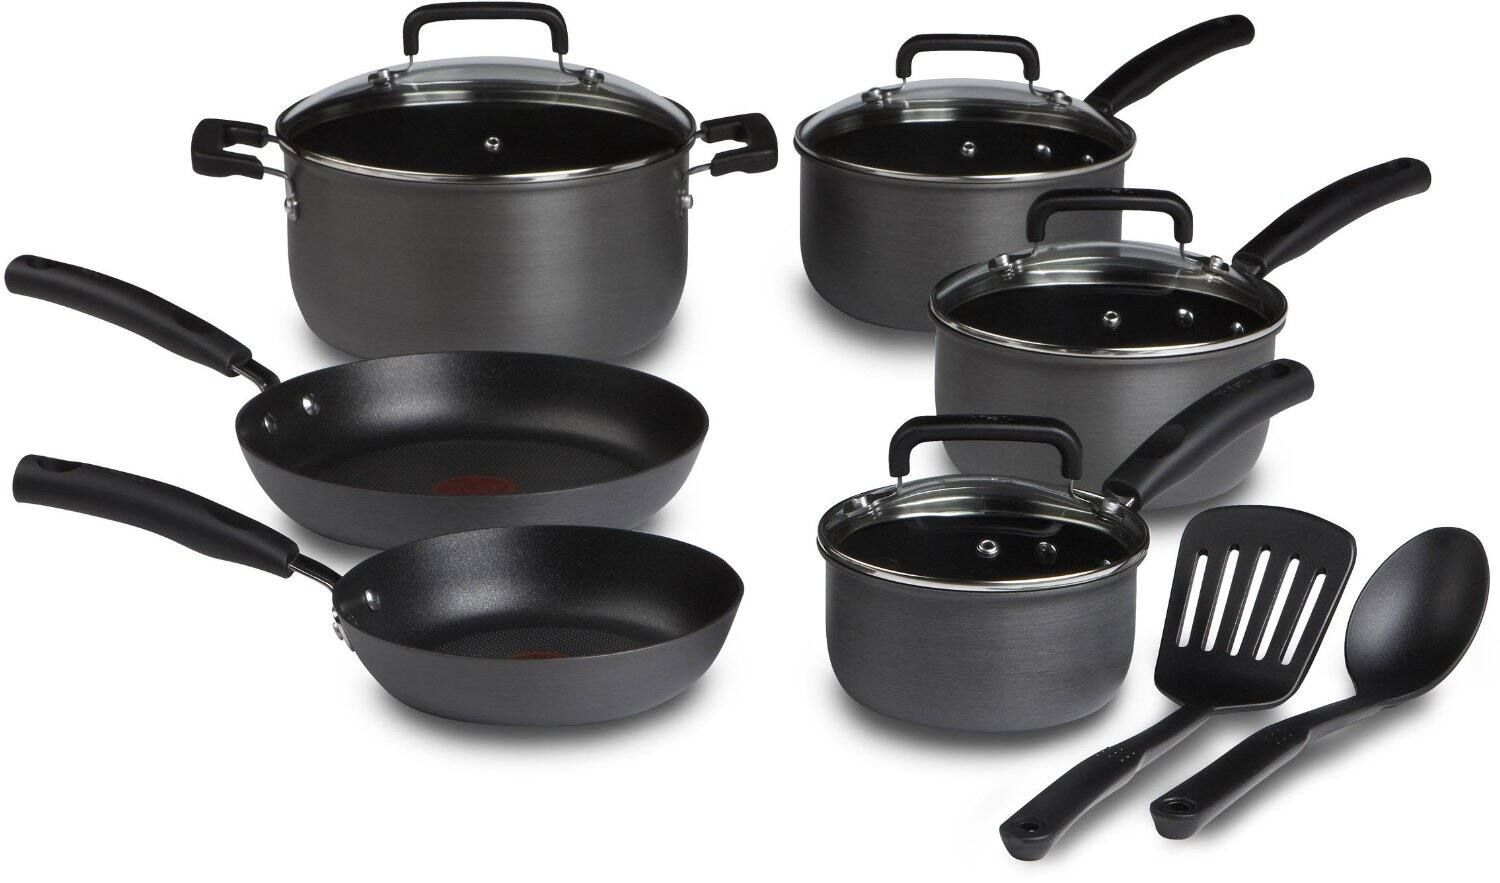 12-Piece T-fal Signature Hard Anodized Nonstick Thermo-Spot Cookware Set  $52 + Free Shipping